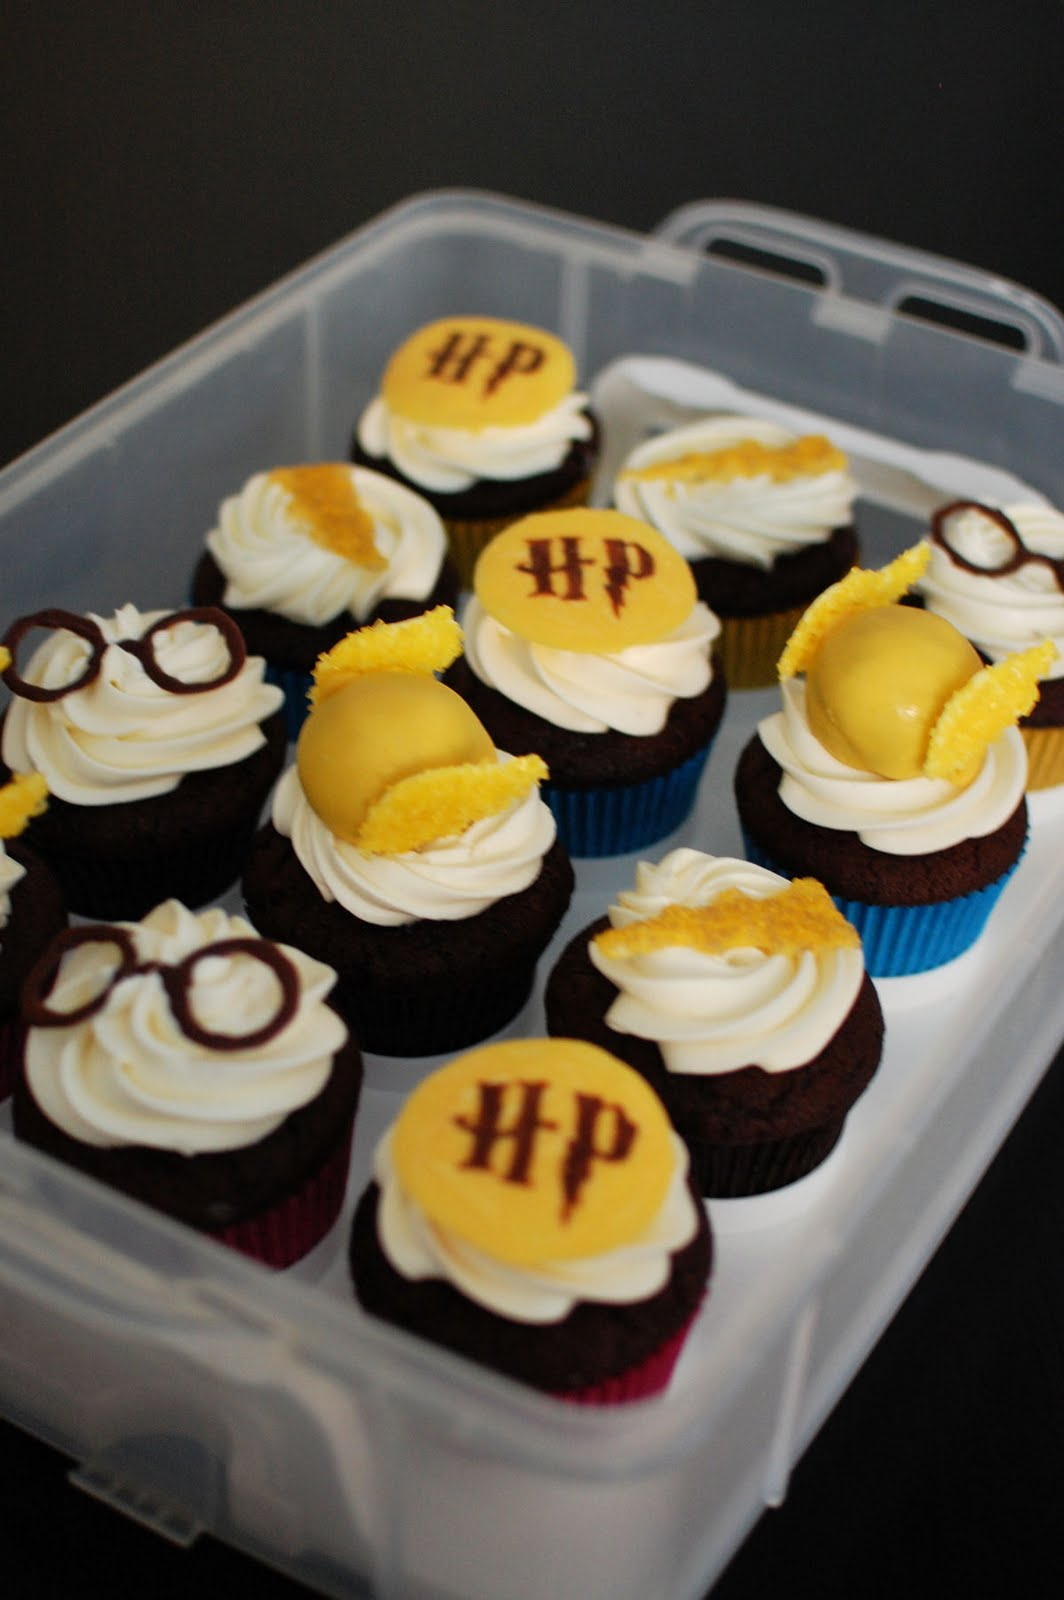 More Harry Potter Cupcakes Including Golden Snitch